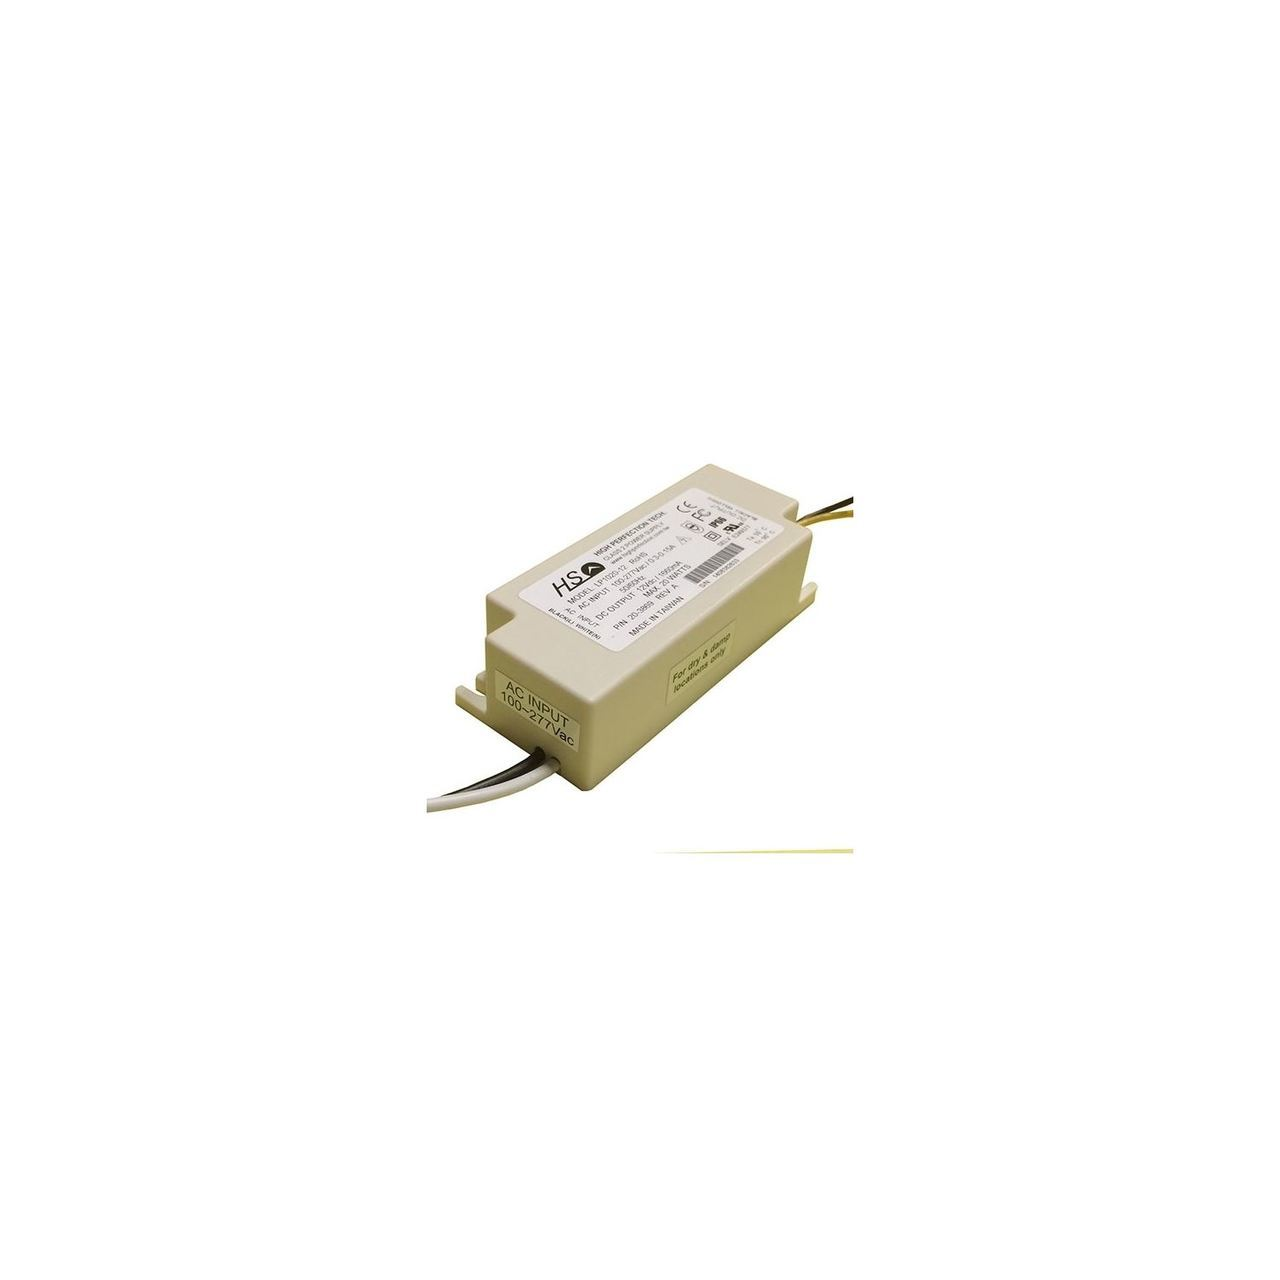 LP1020-12 - 20w LED Driver - 12v constant voltage